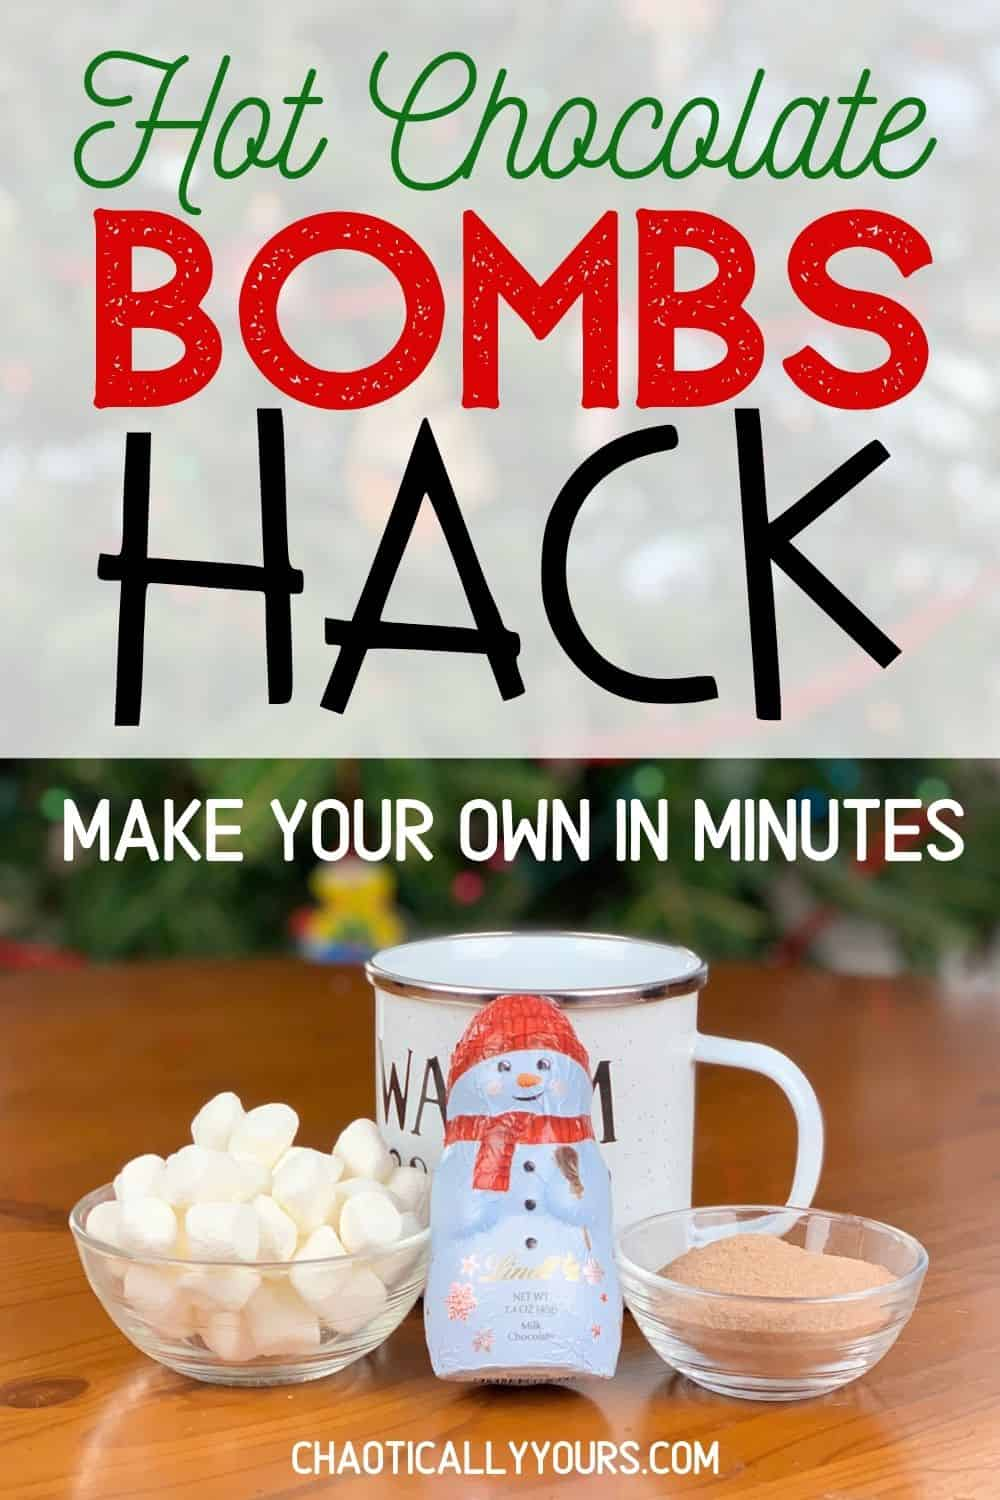 hot chocolate bombs hack pin image